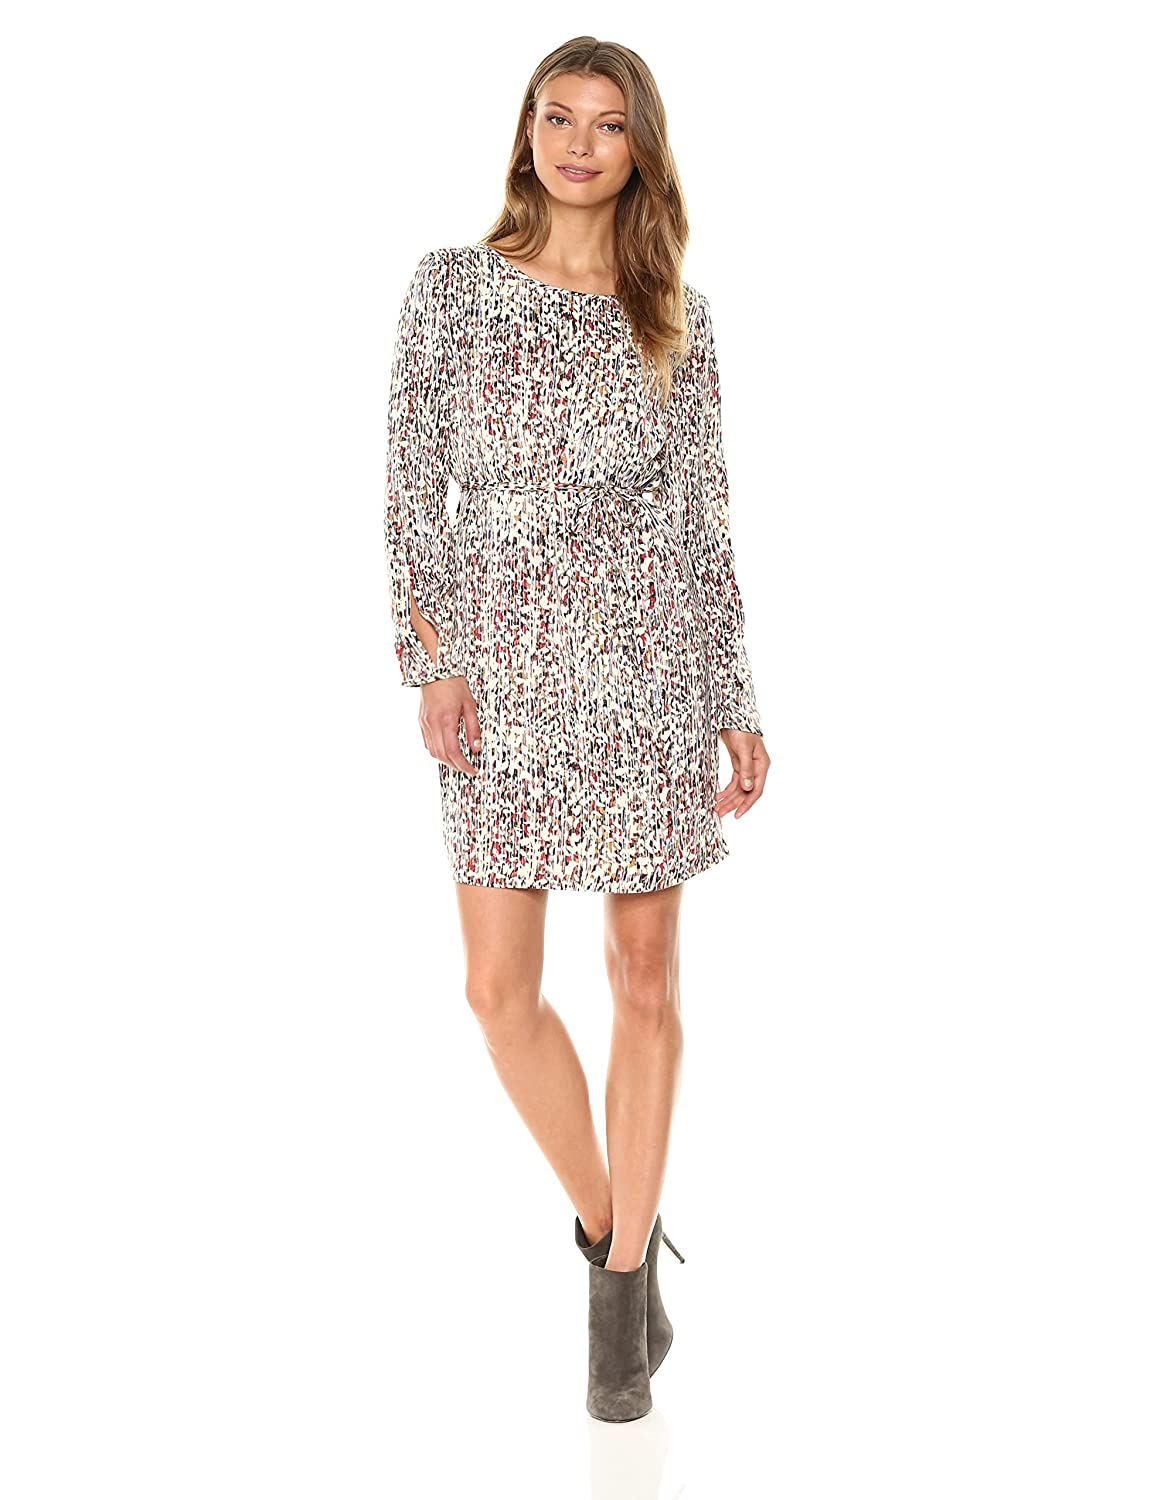 91200d17 Dresses : Online Shopping for Clothing, Shoes, Jewelry, Pet Supplies ...